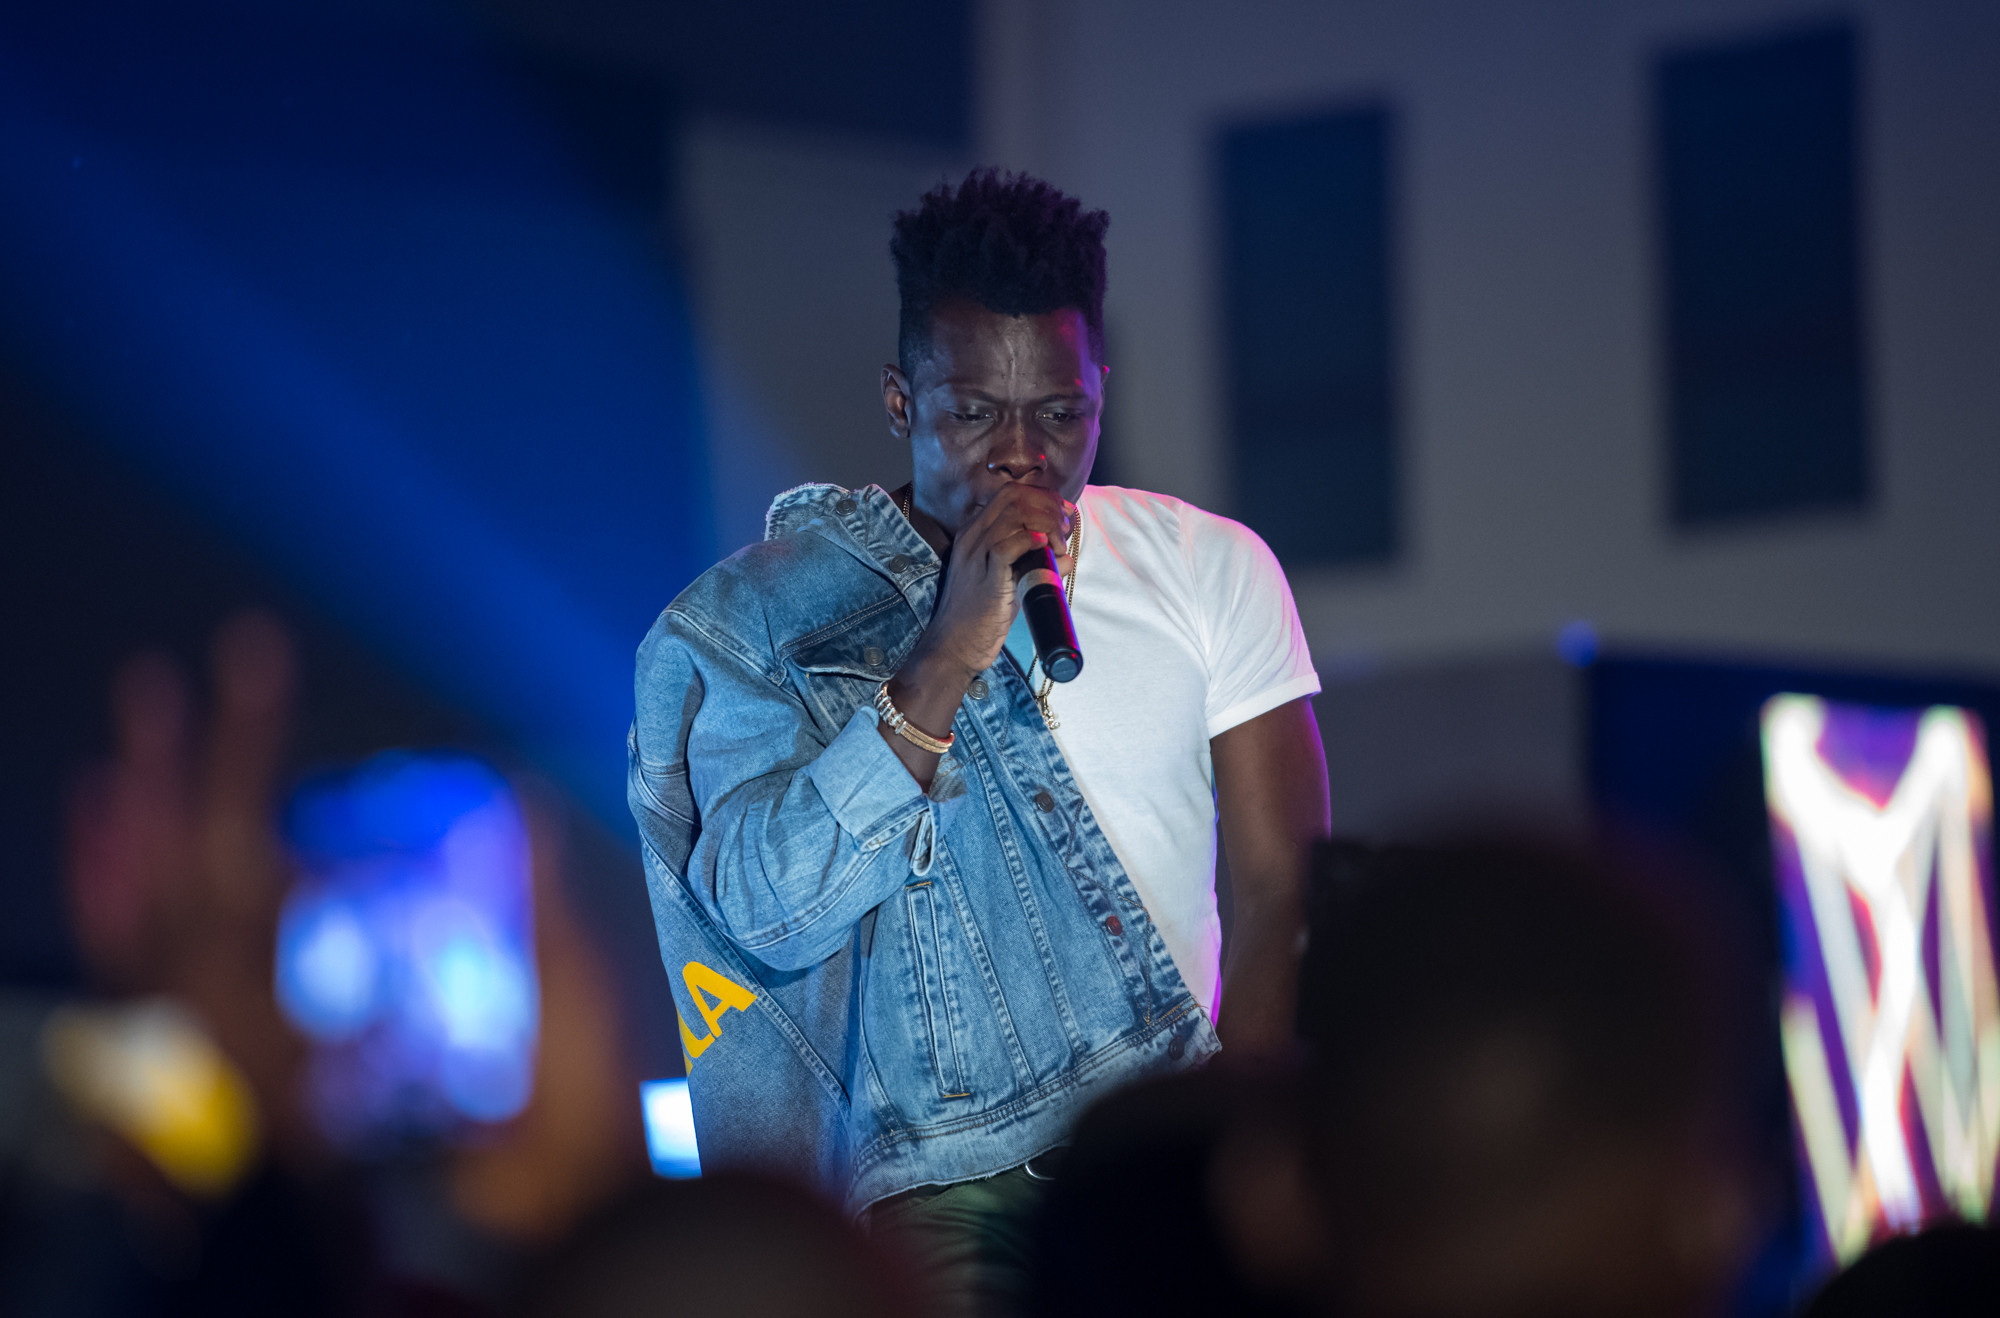 Lagos, Nigeria. 9th November 2018.  Terry Apala performs at her Human Radio Concert. Photographed by Michael Tubes